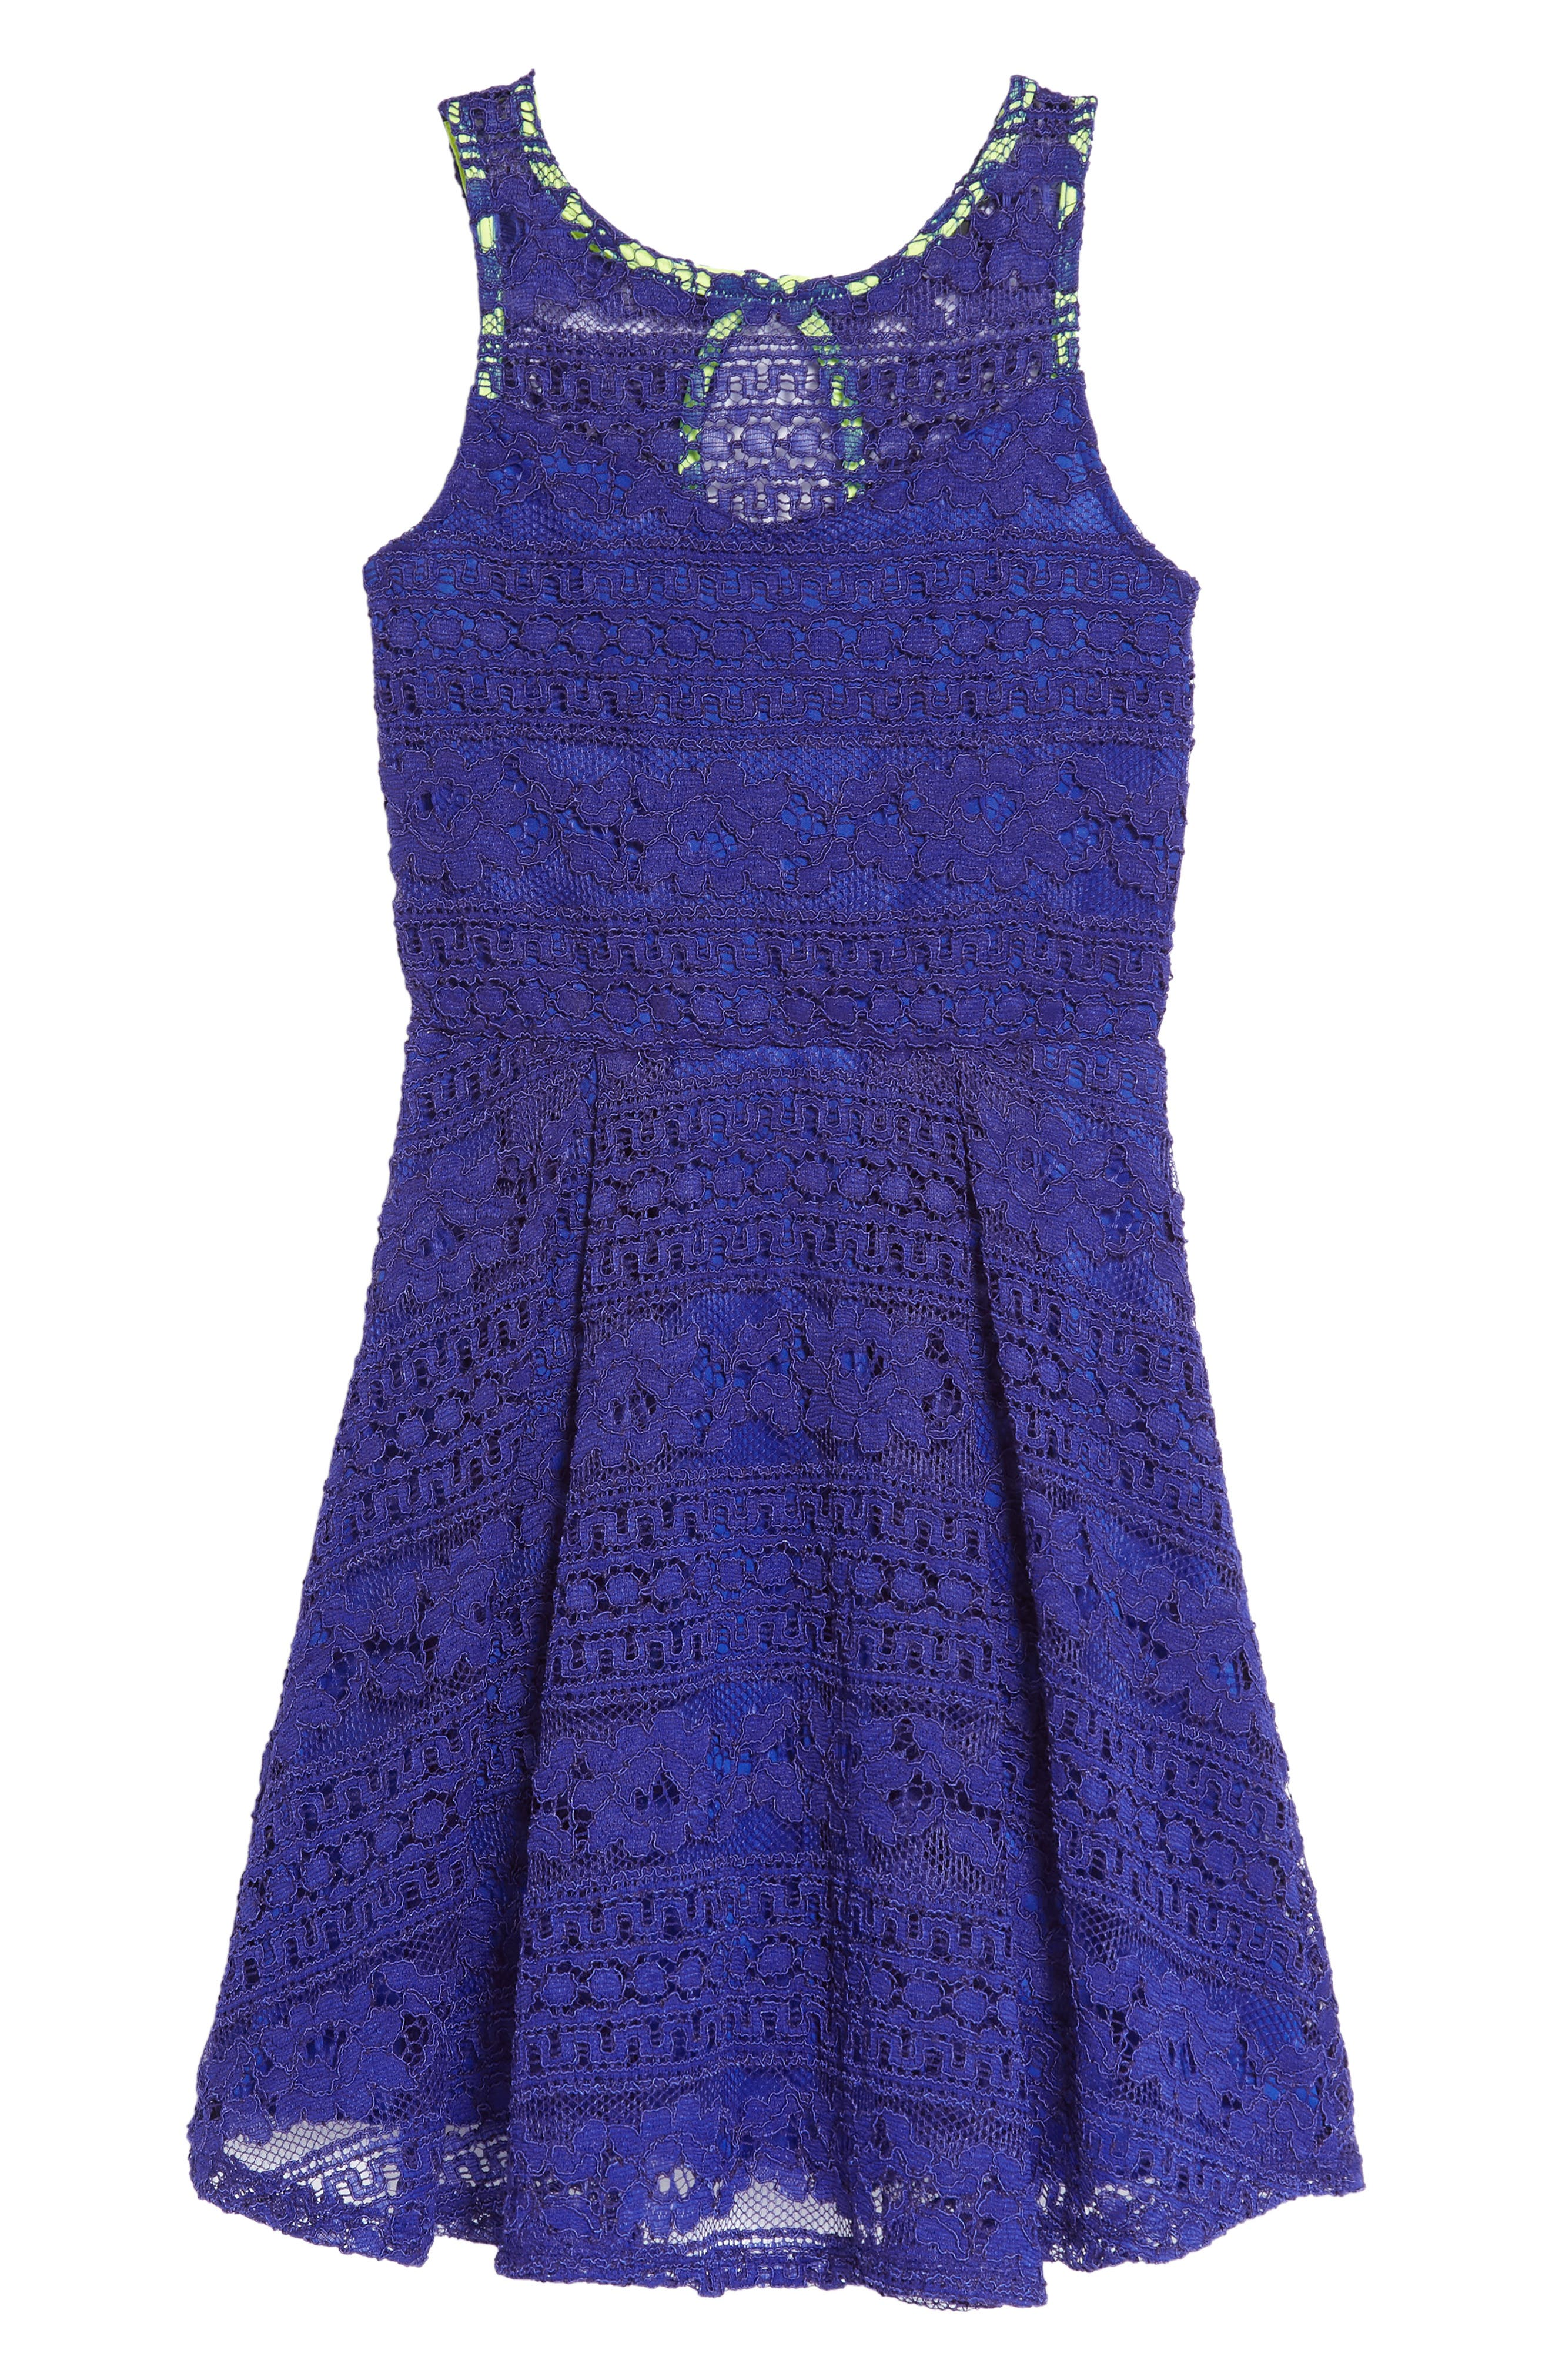 AVA & YELLY Lace Skater Dress, Main, color, 420